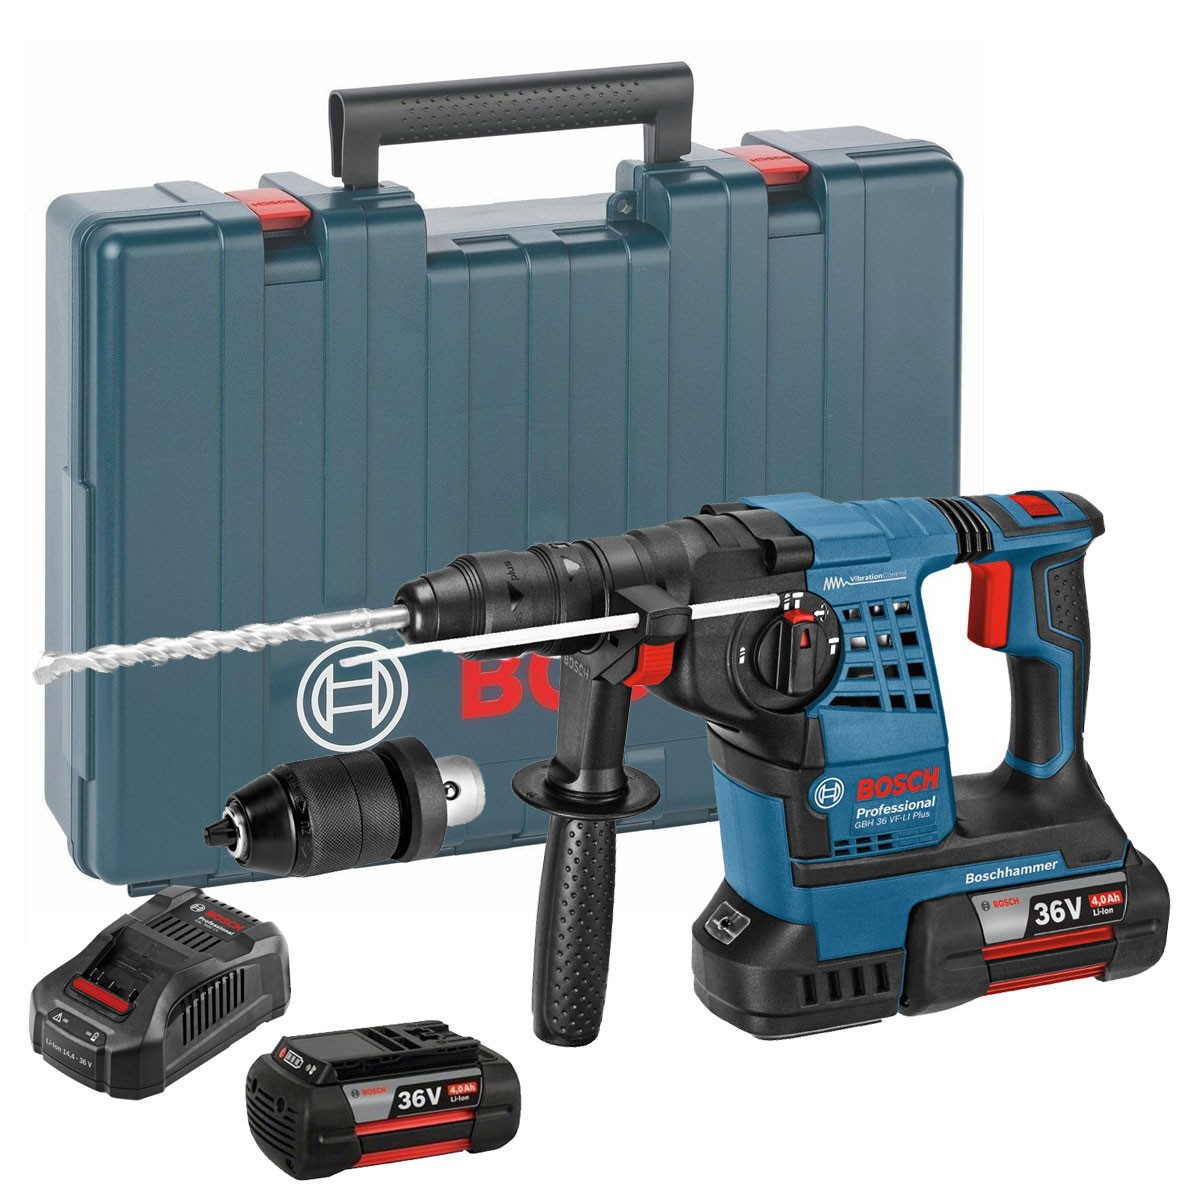 Bosch GBH 36 VF-LI Plus 36v SDS+ Rotary Hammer inc 2x 4Ah Batts & QCC